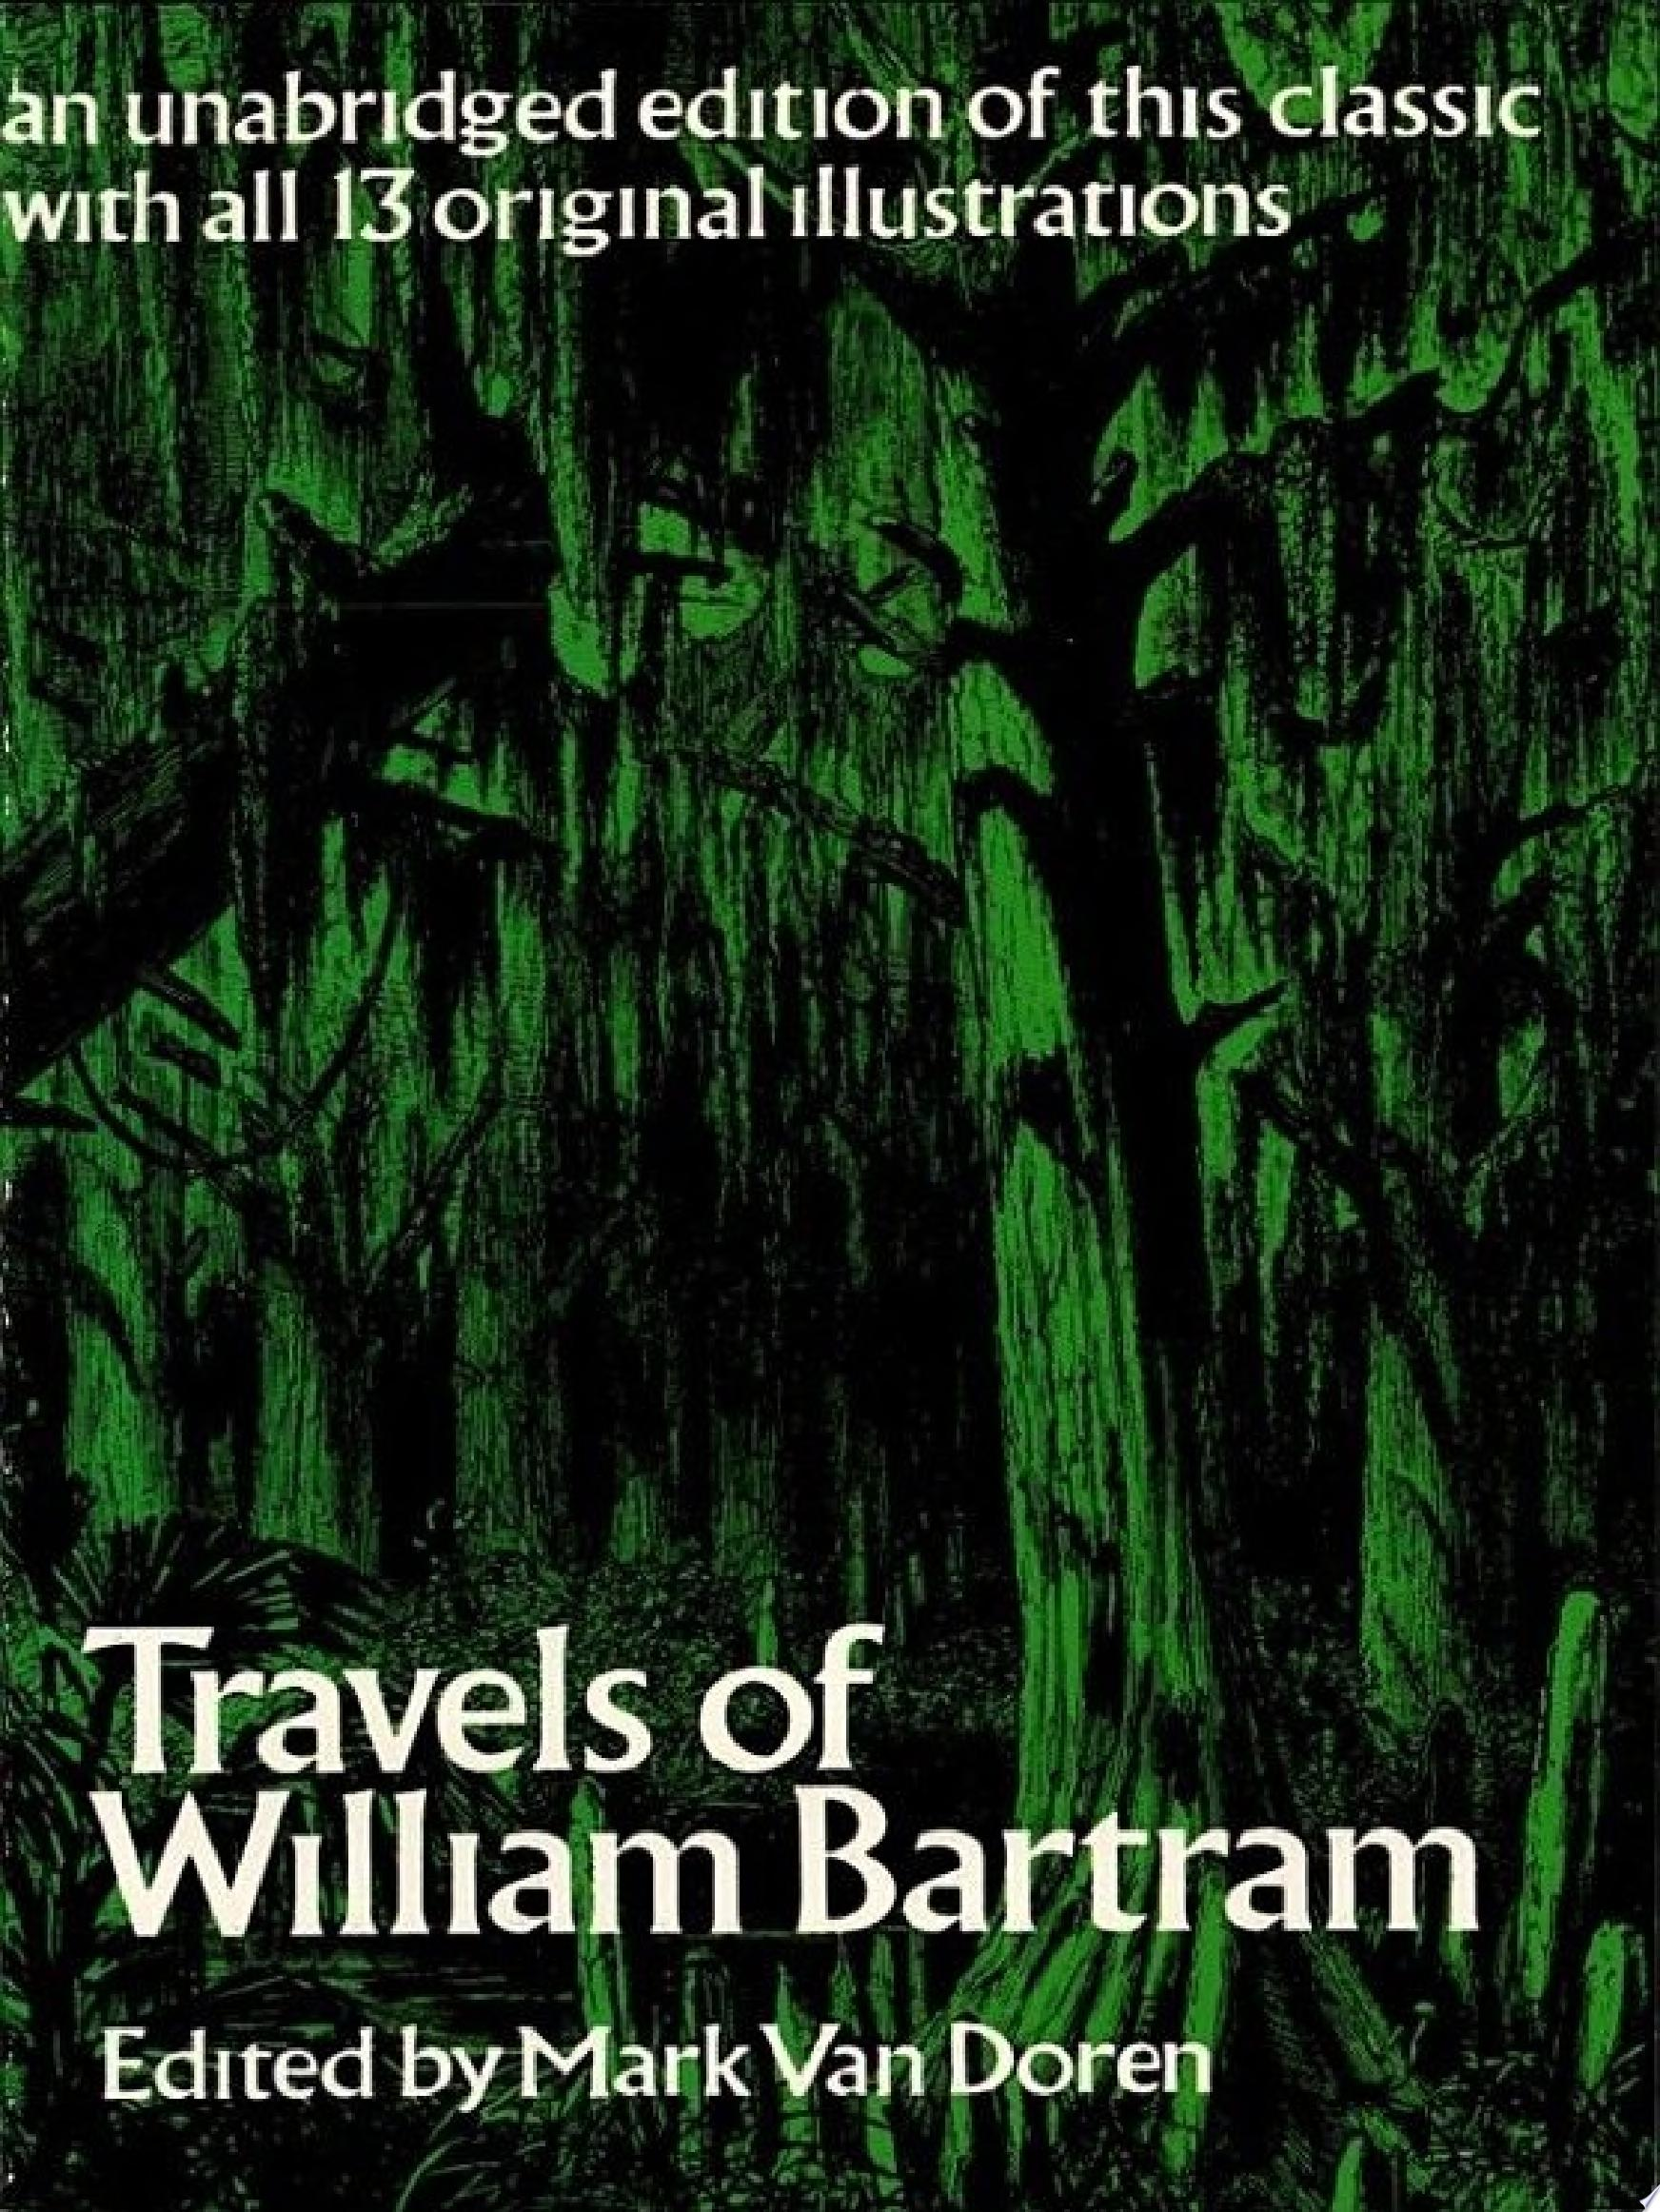 Travels of William Bartram